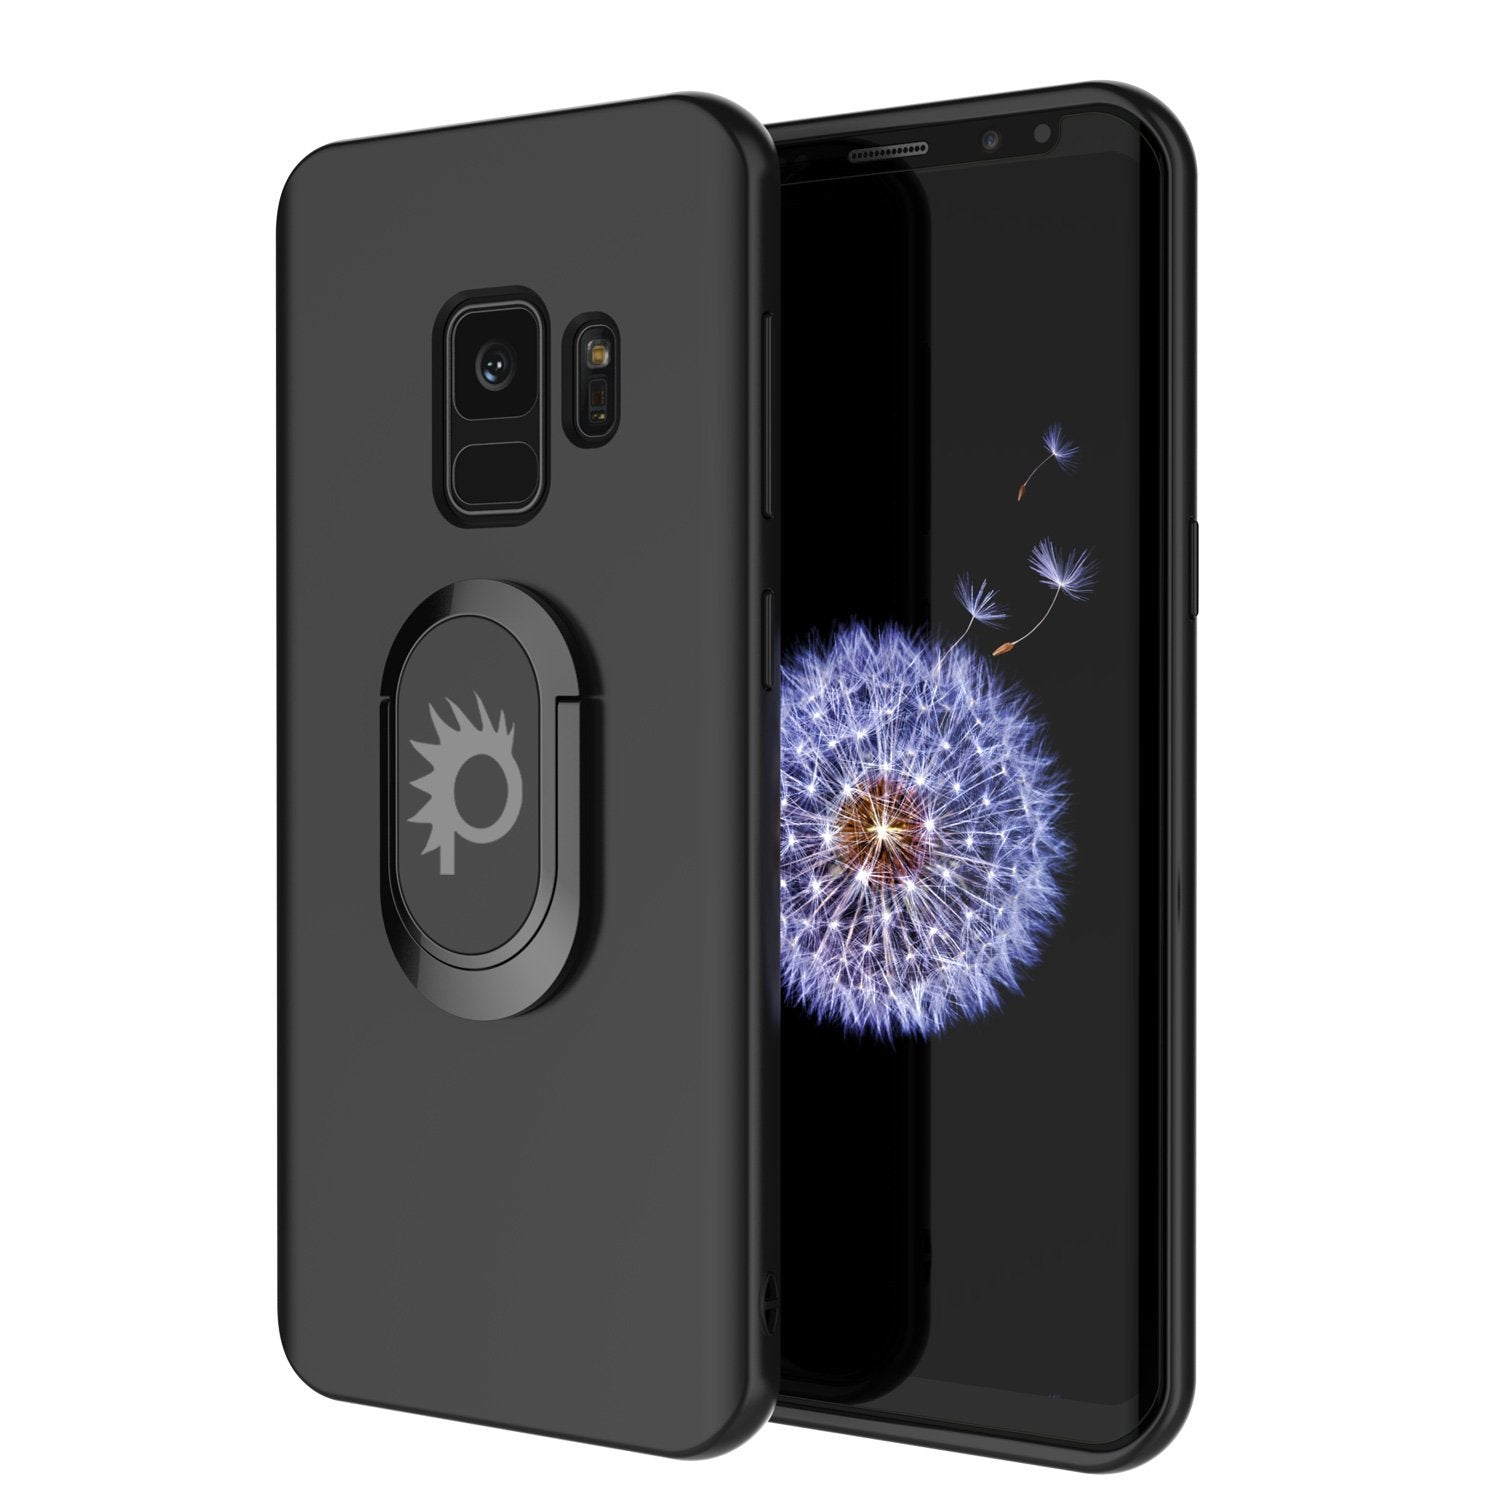 Galaxy S9 Case, Punkcase Magnetix Protective TPU Cover W/ Kickstand, Sceen Protector[Black]